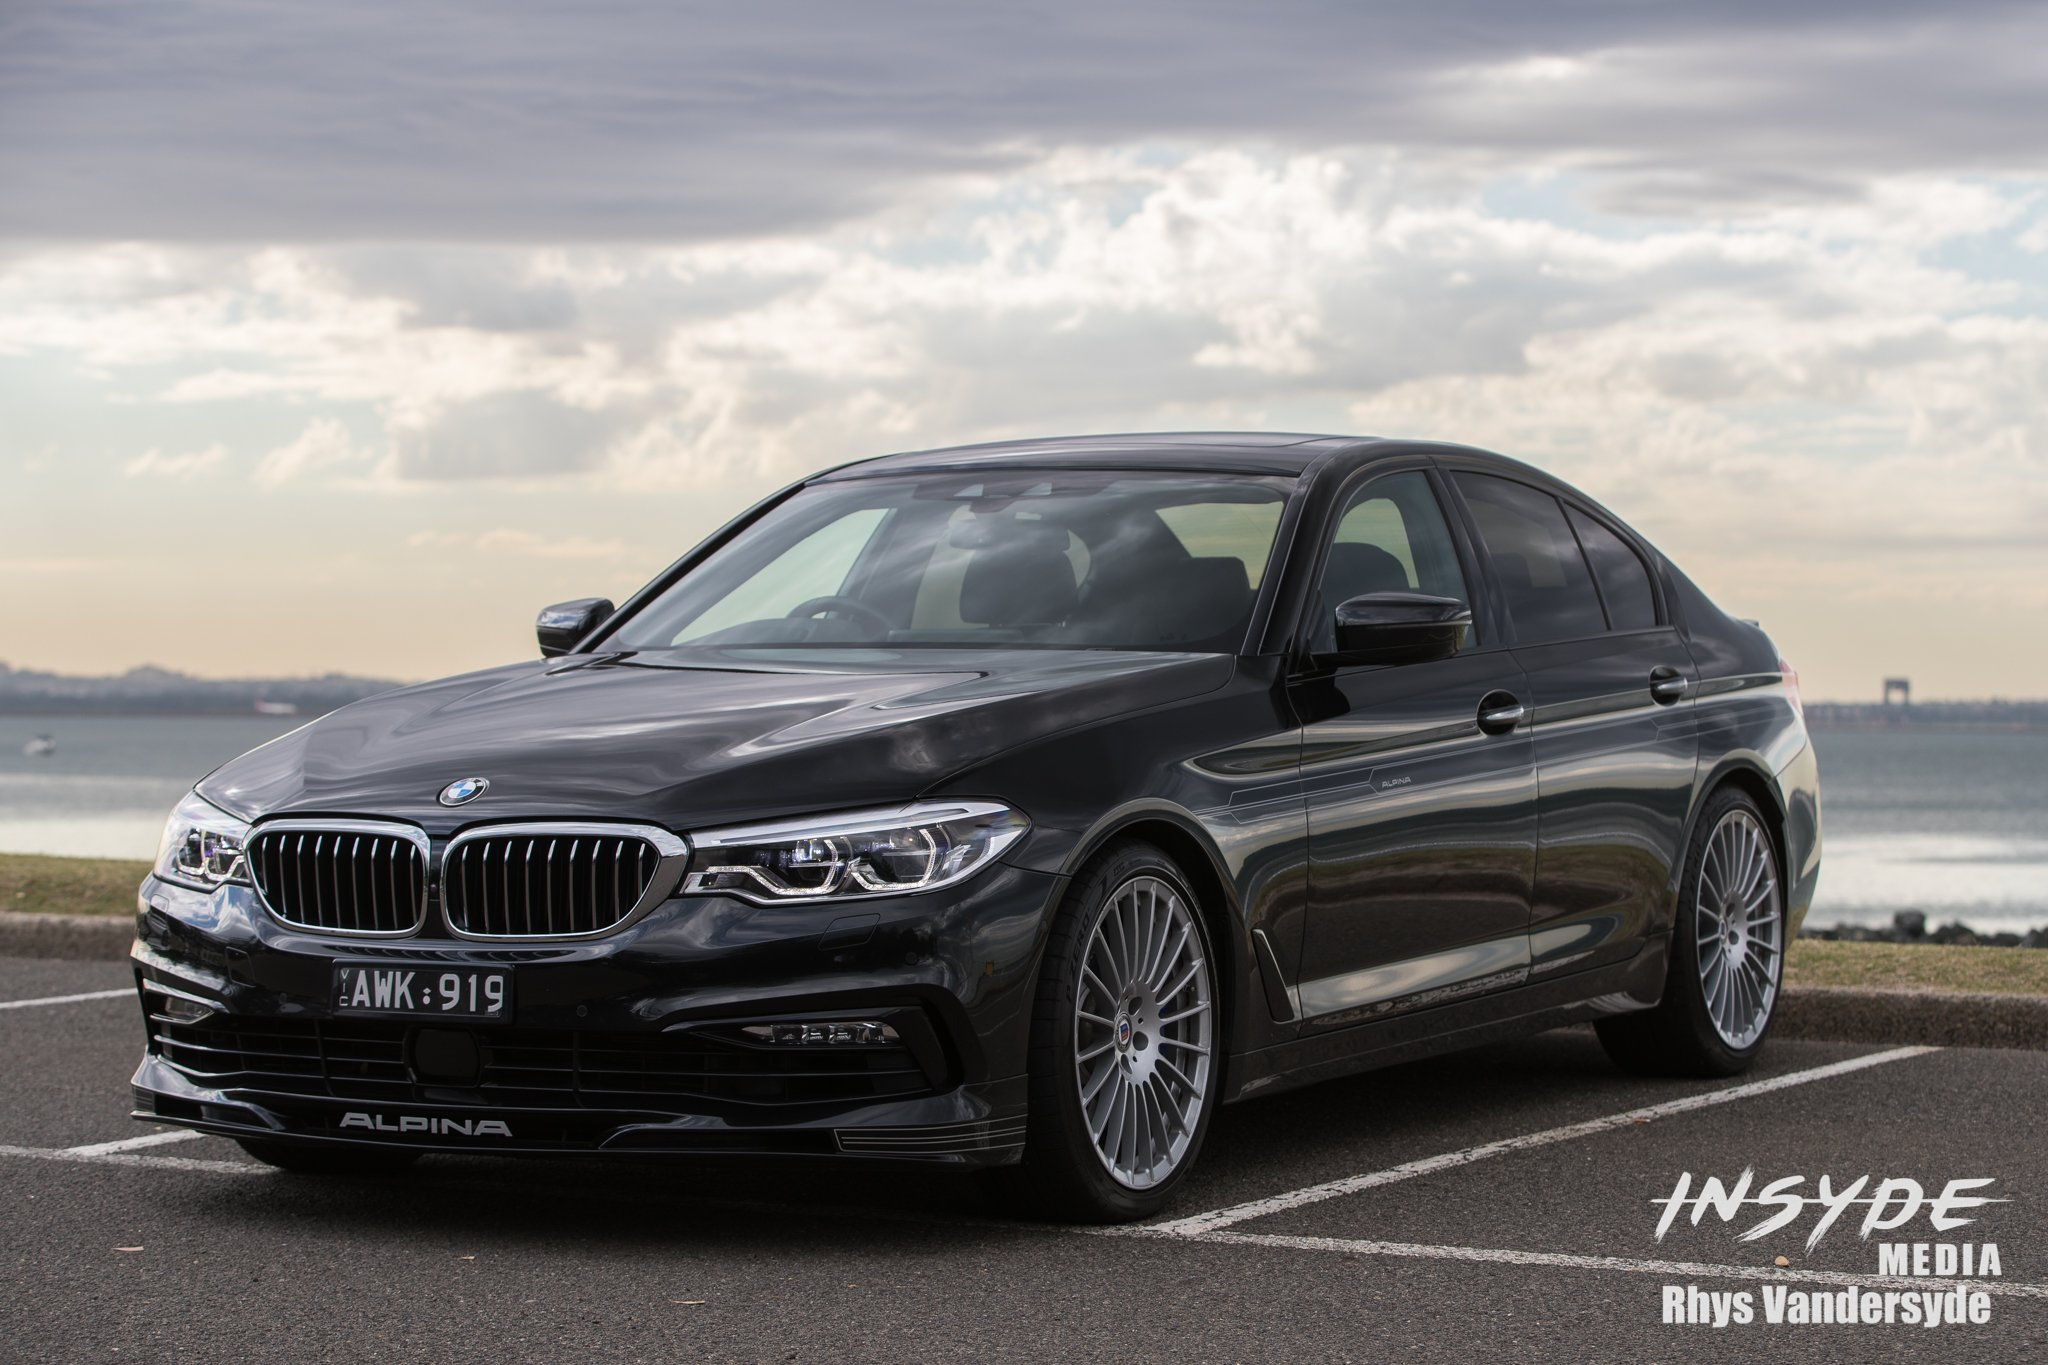 Photo Shoot: BMW Alpina B5